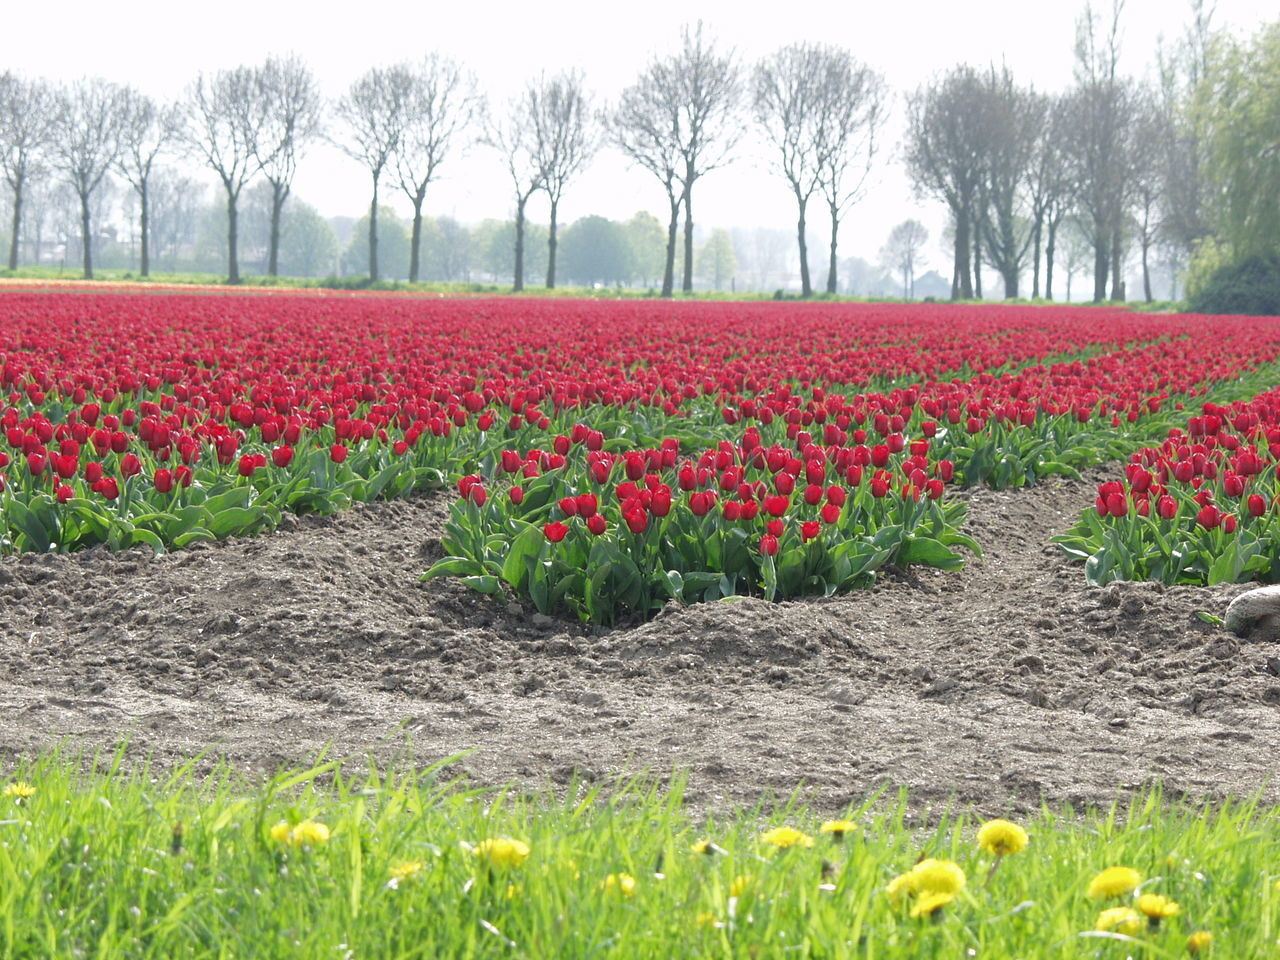 field, nature, beauty in nature, growth, tree, flower, tranquility, red, landscape, tranquil scene, scenics, day, rural scene, tulip, freshness, outdoors, no people, grass, agriculture, fragility, plant, multi colored, flower head, sky